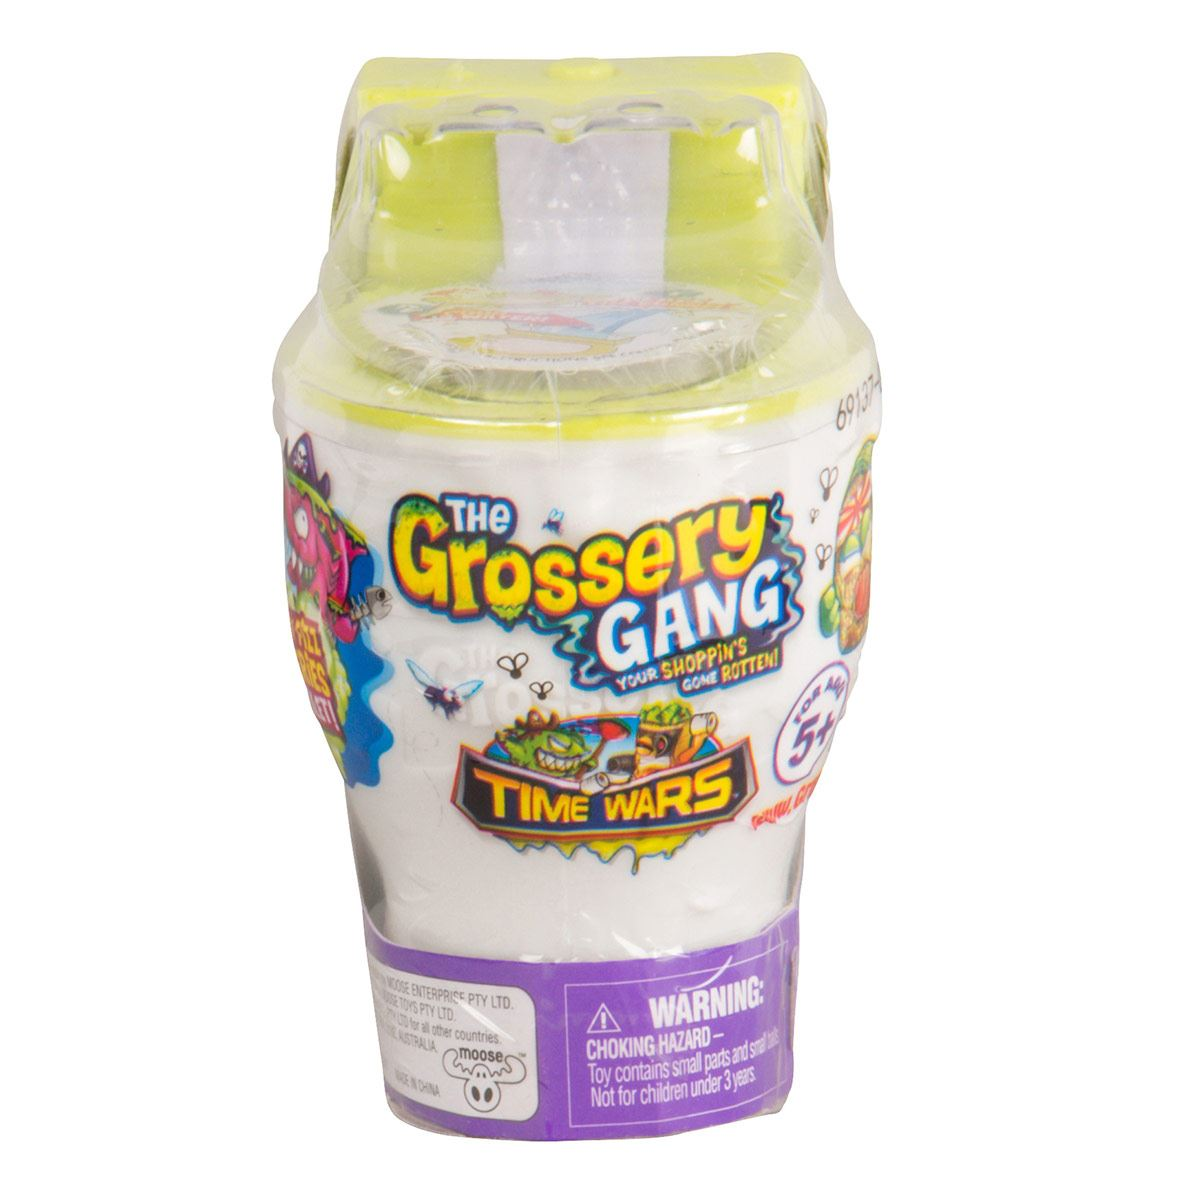 The Grossery Gang T5 Surprise PK